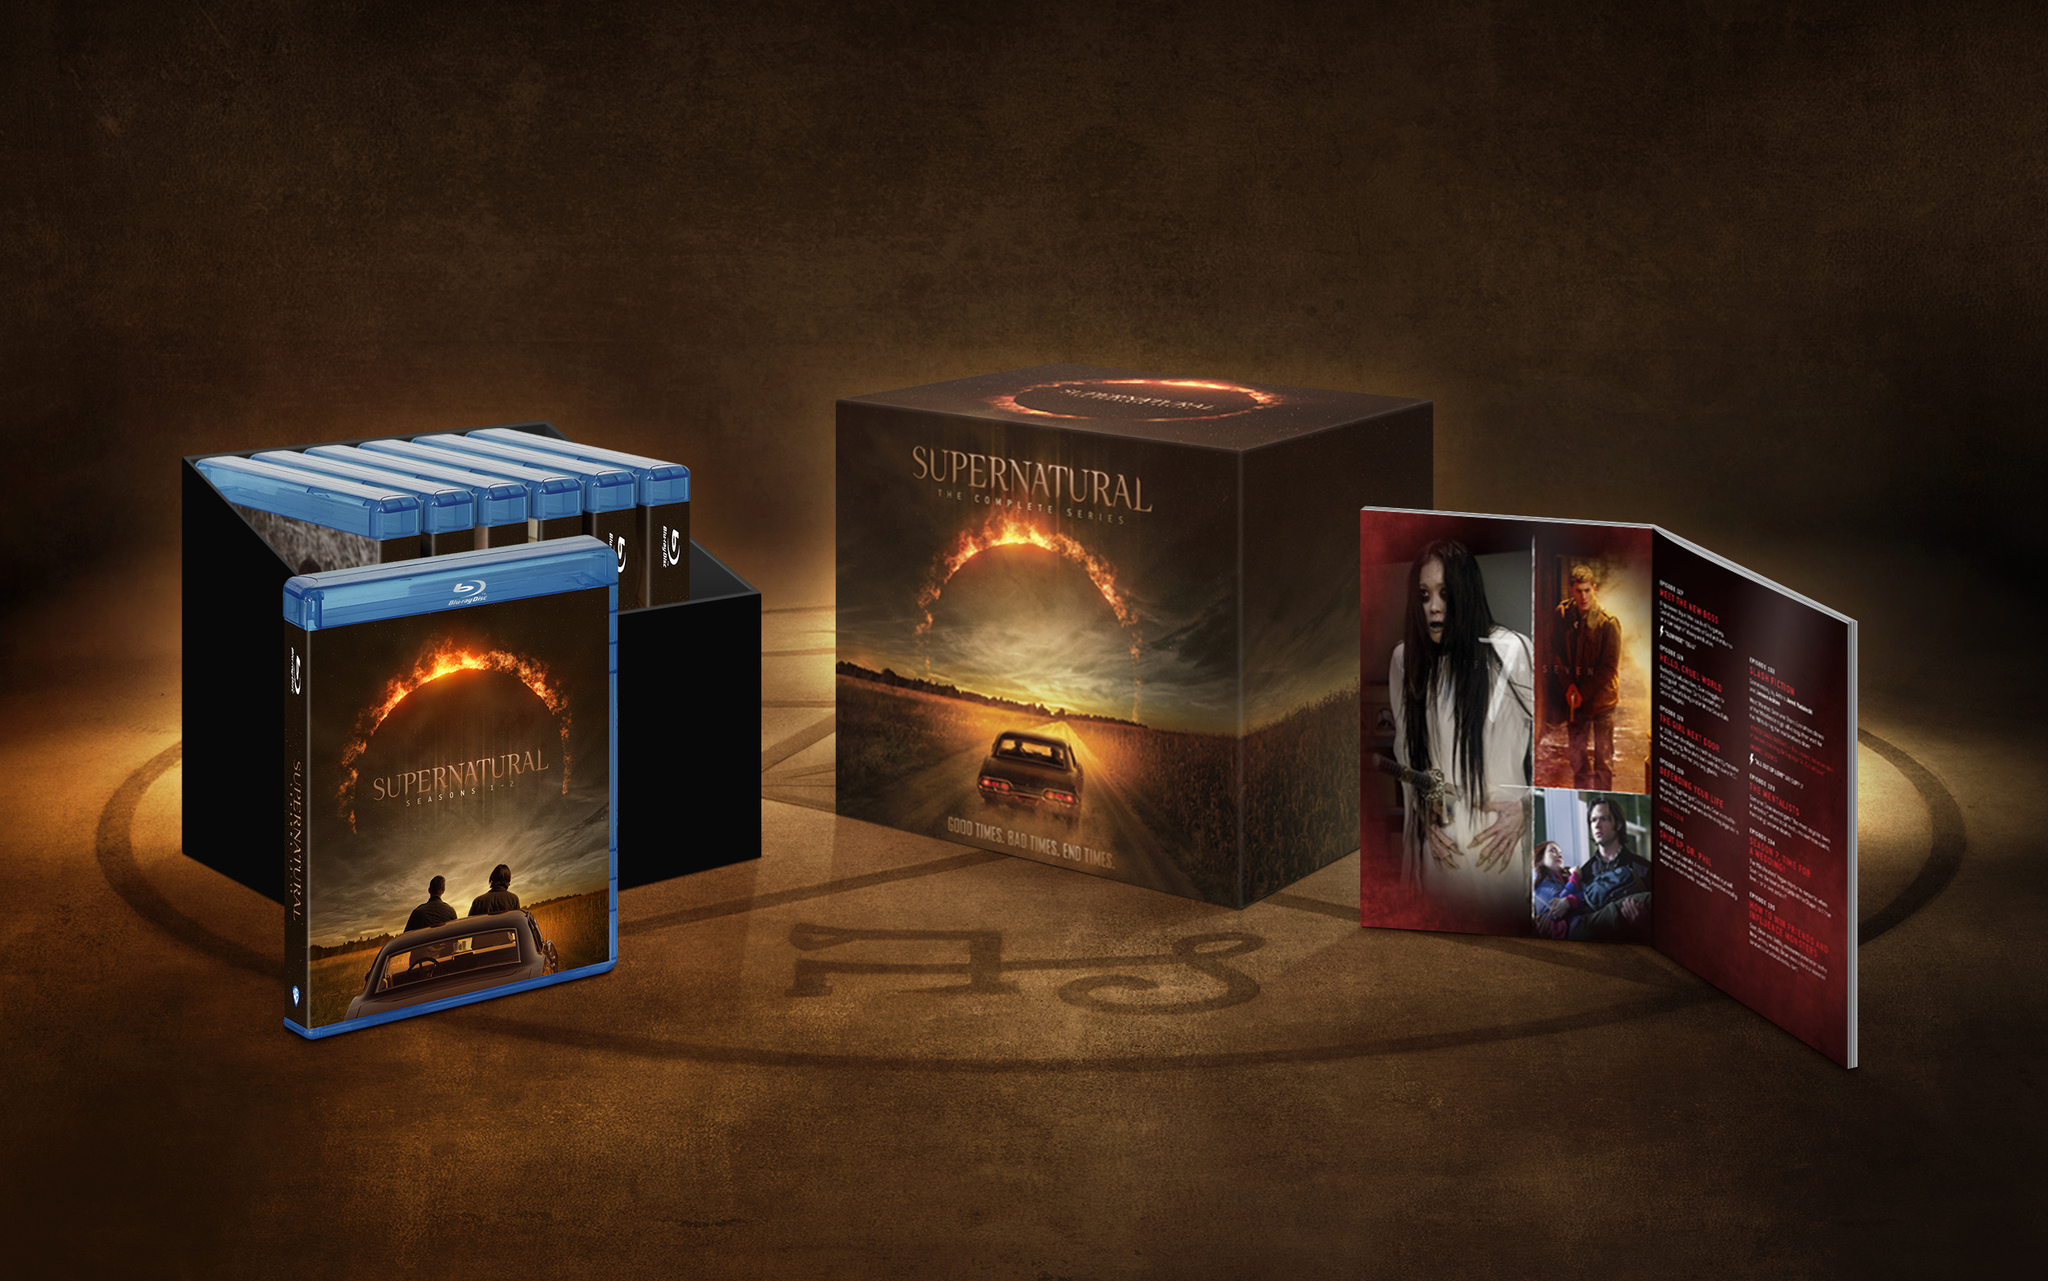 Supernatural The Complete Series Available May 25th!